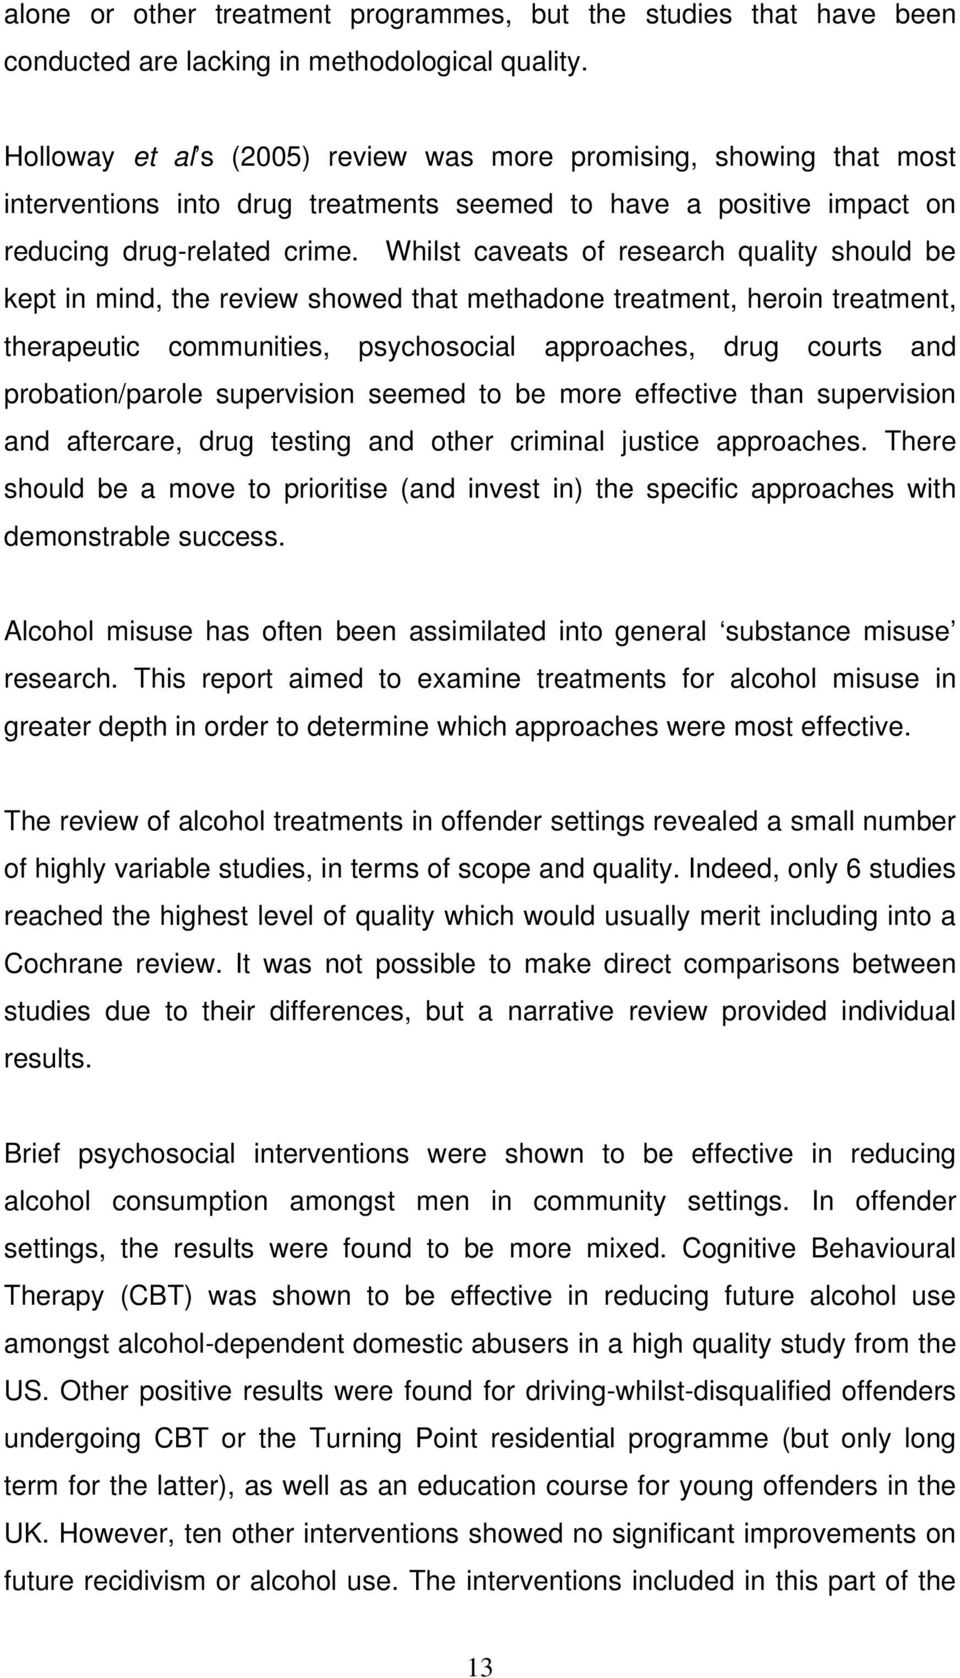 Whilst caveats of research quality should be kept in mind, the review showed that methadone treatment, heroin treatment, therapeutic communities, psychosocial approaches, drug courts and